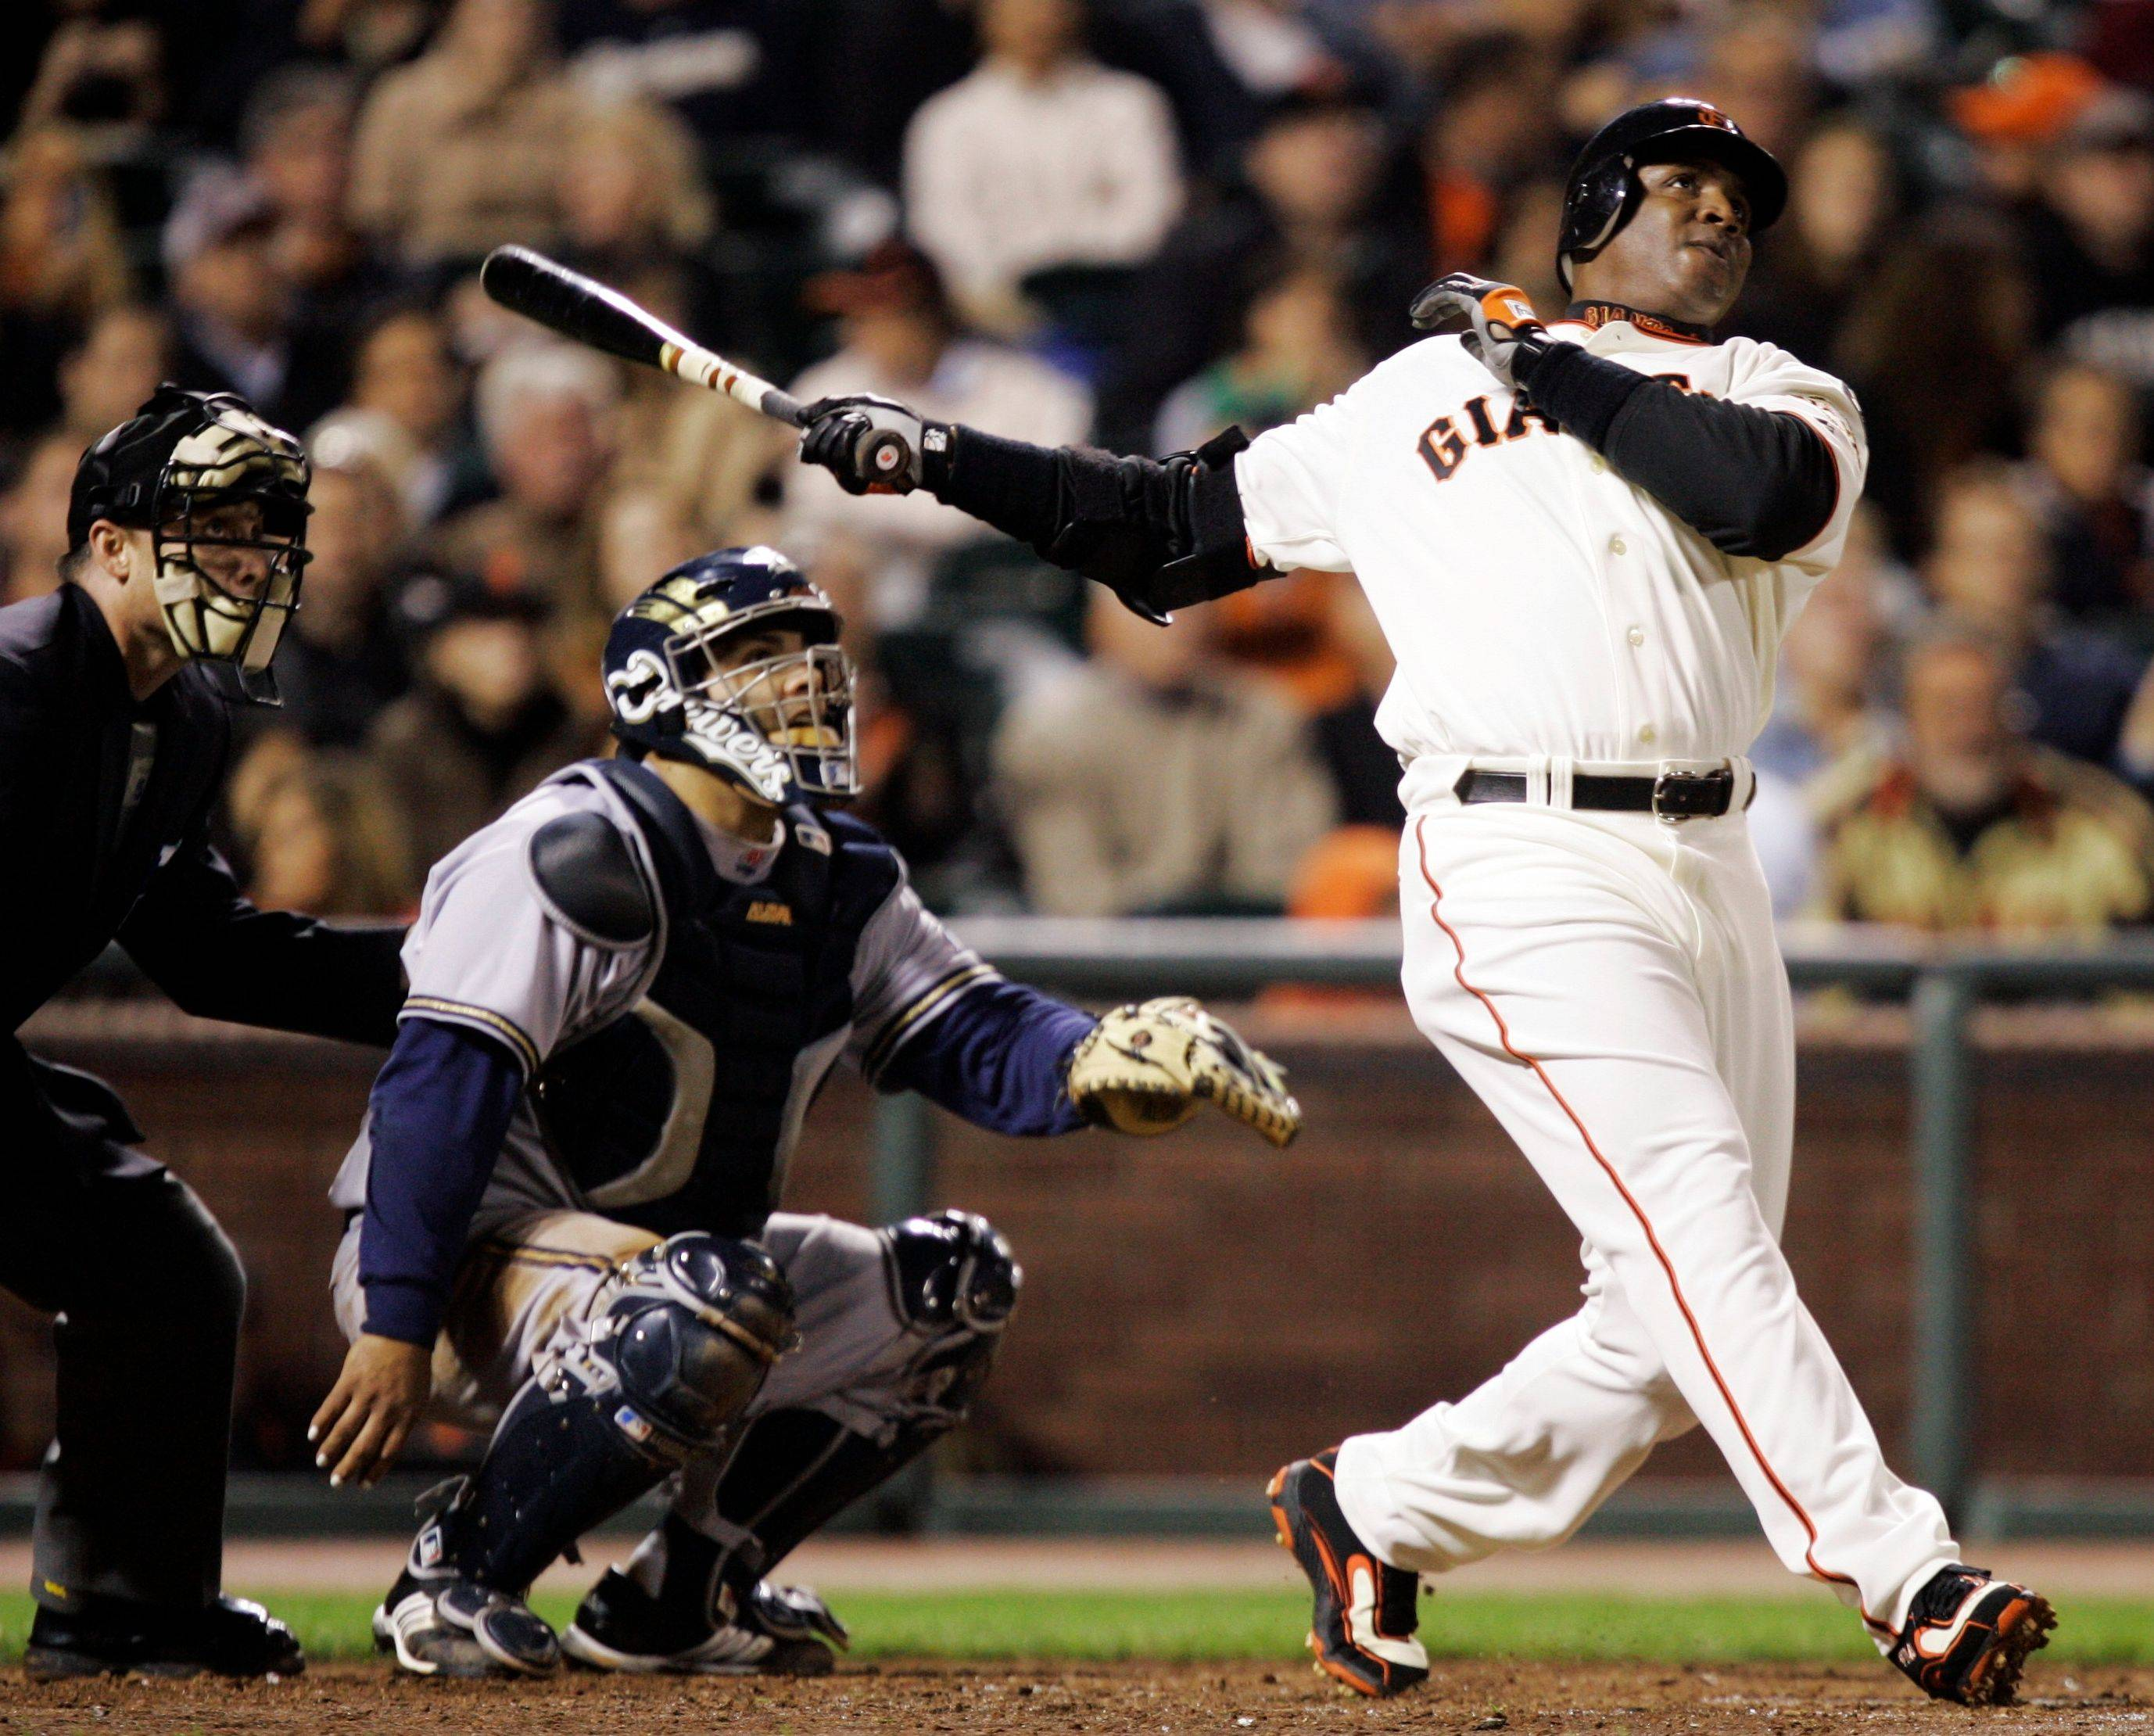 San Francisco Giants' Barry Bonds, above, Rogers Clemens, and Sammy Sosa are on the Hall of Fame ballot for the first time, and fans will find out on Jan. 9 whether drug allegations block the former stars from reaching baseball's shrine.